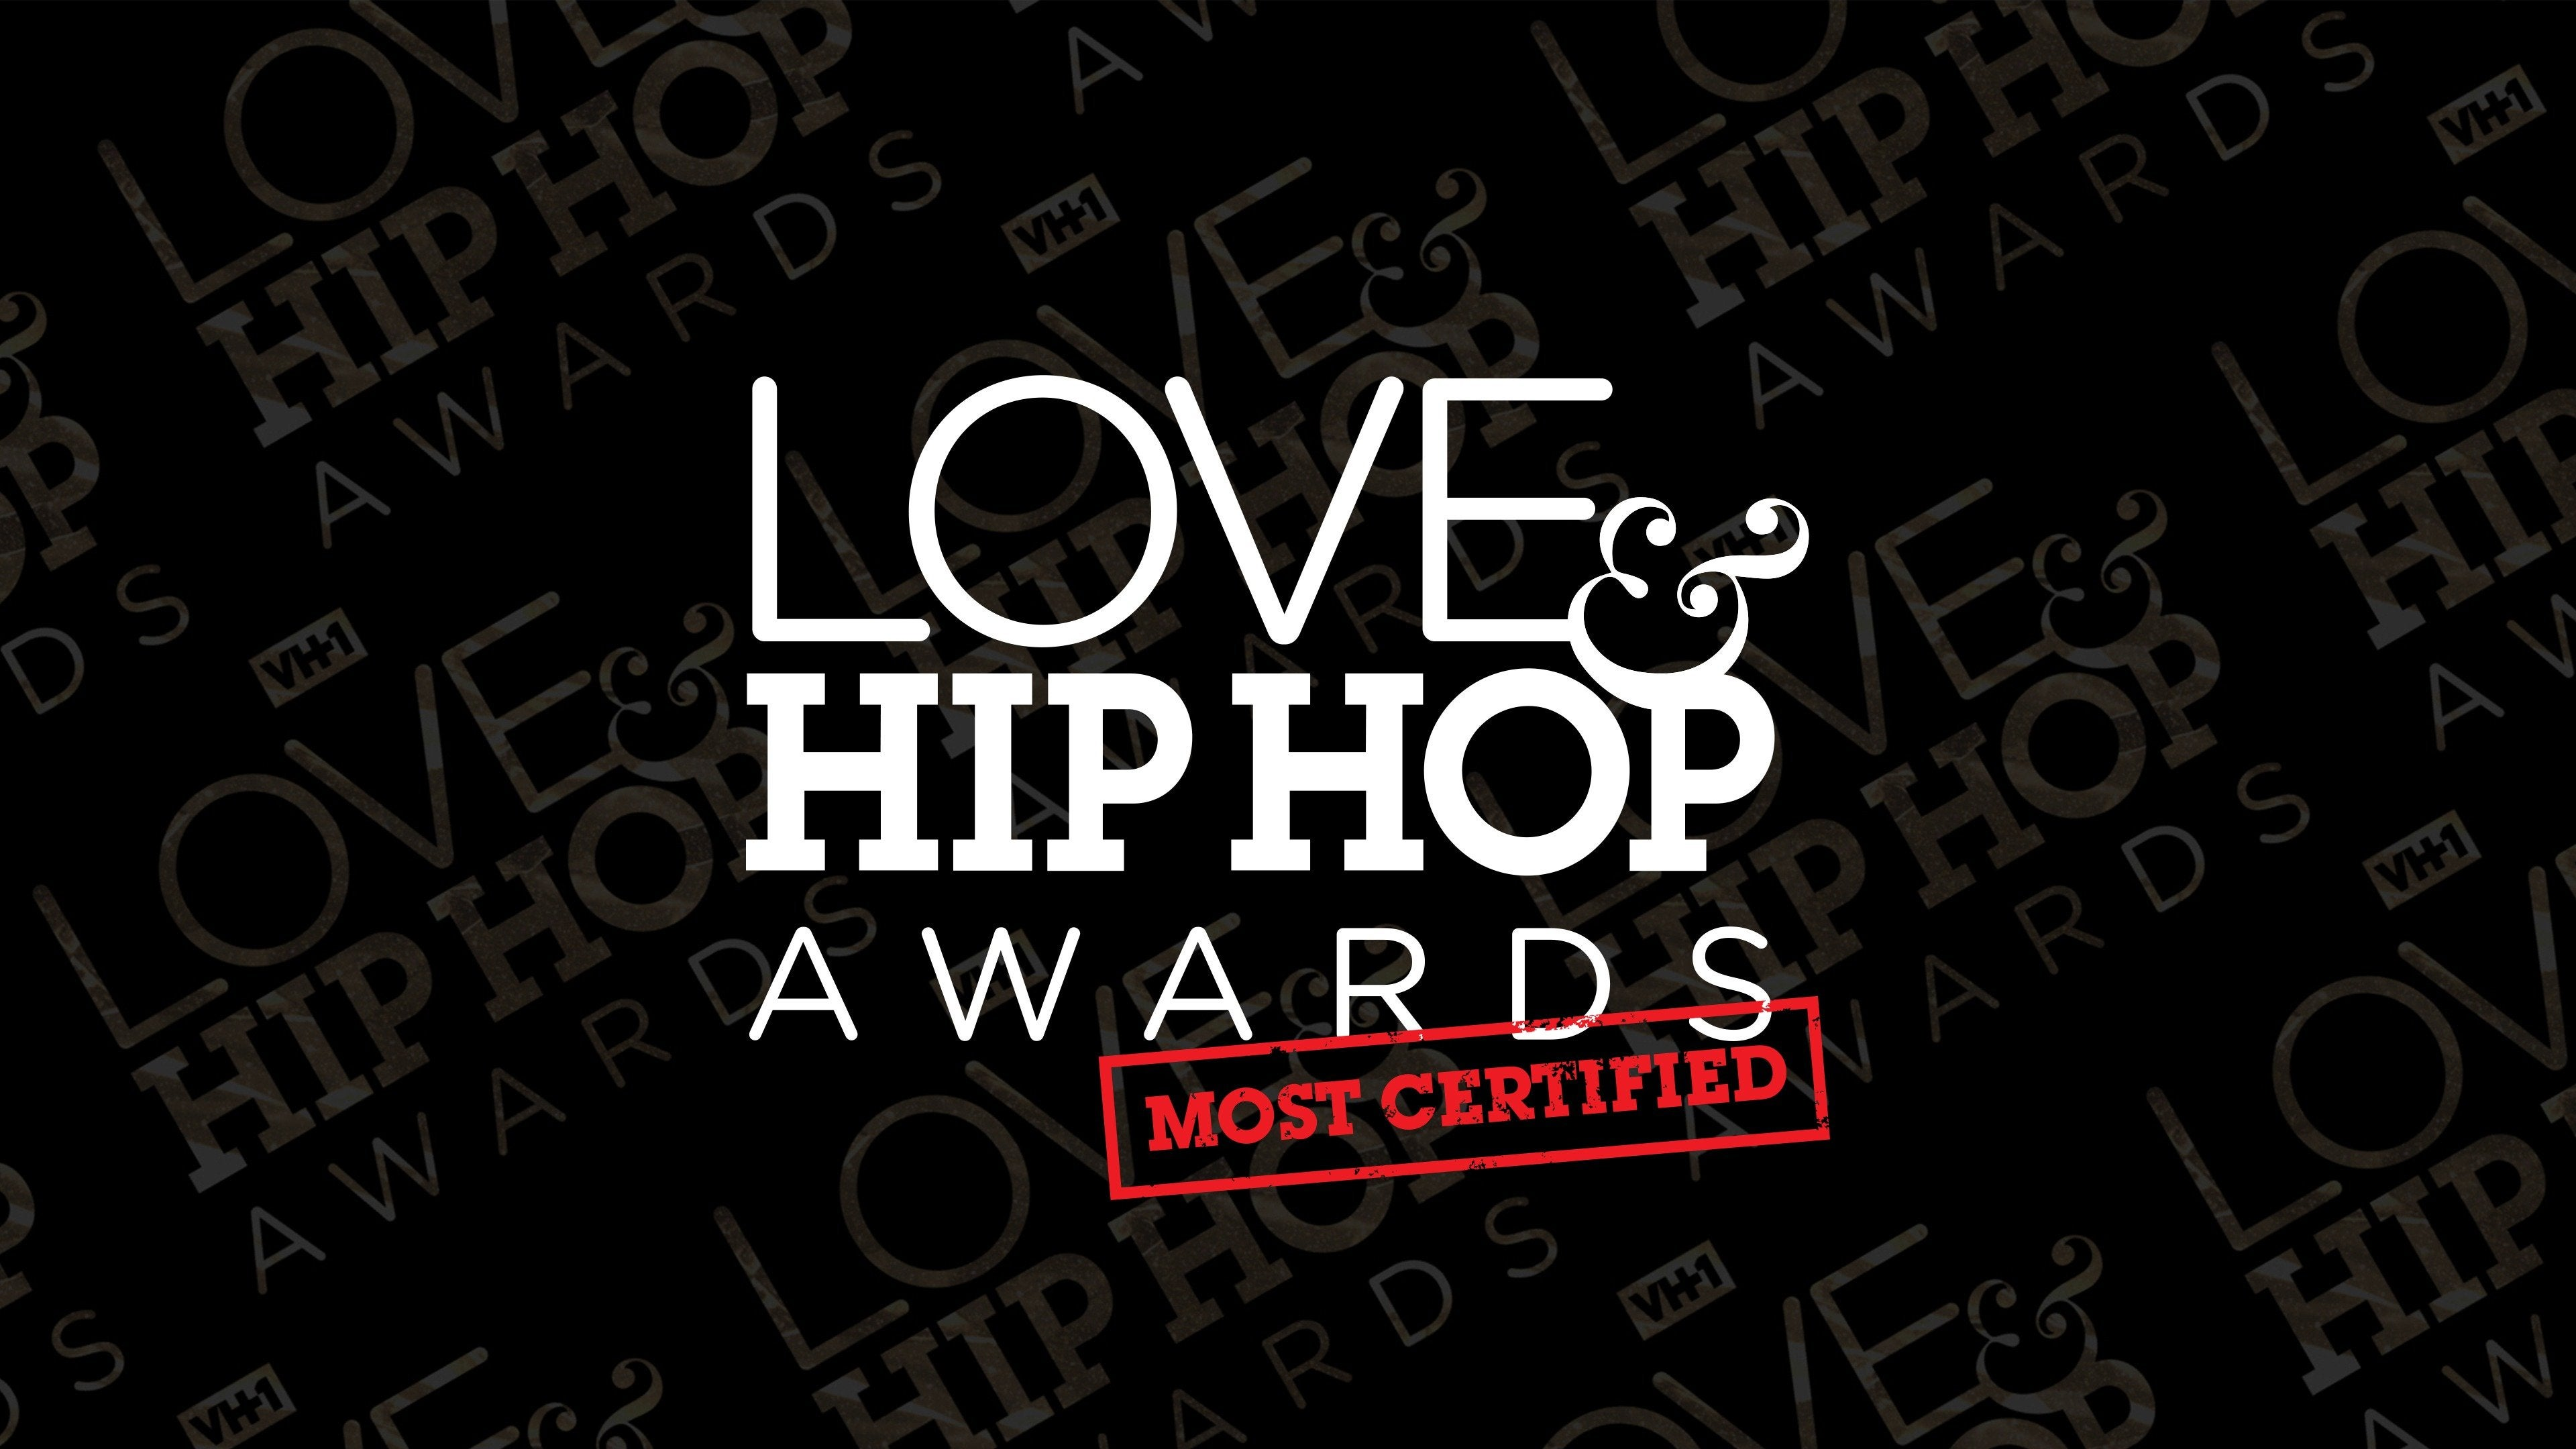 Love & Hip Hop Awards: Most Certified